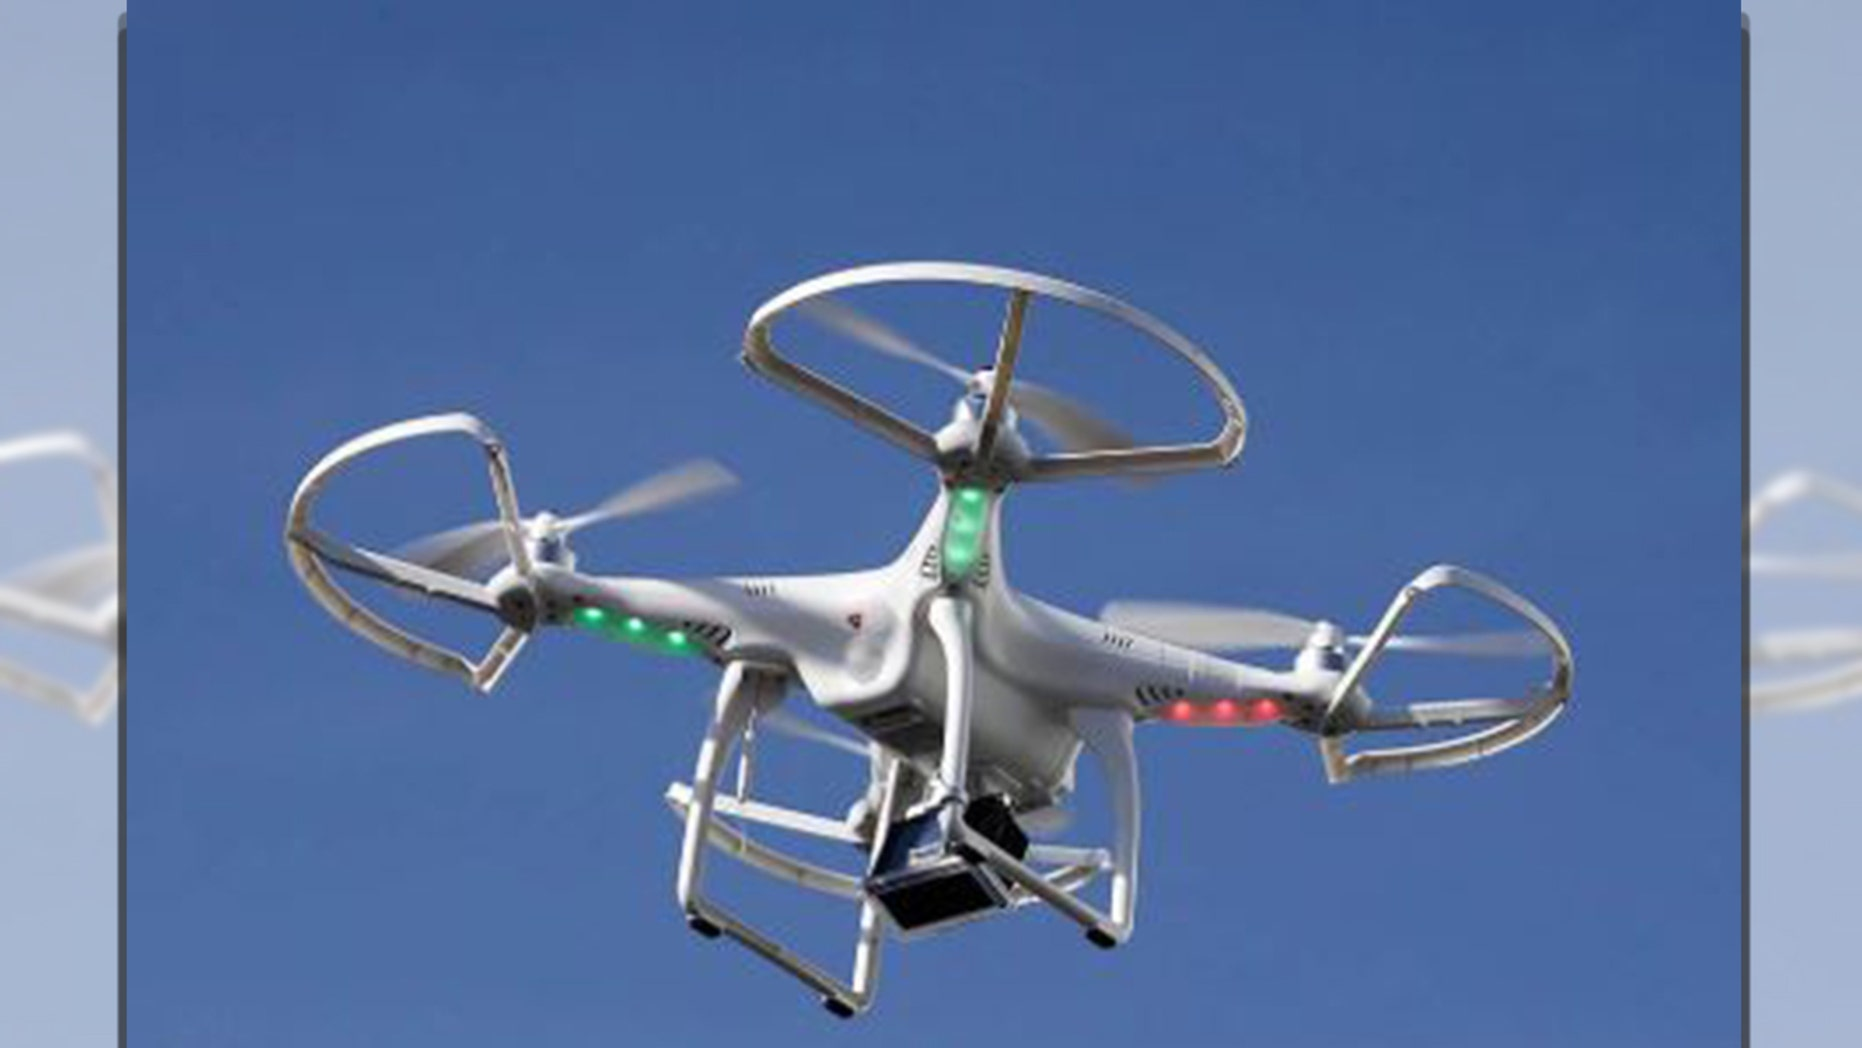 the Dallas Police Department is pursuing drone technology to help fight crime.